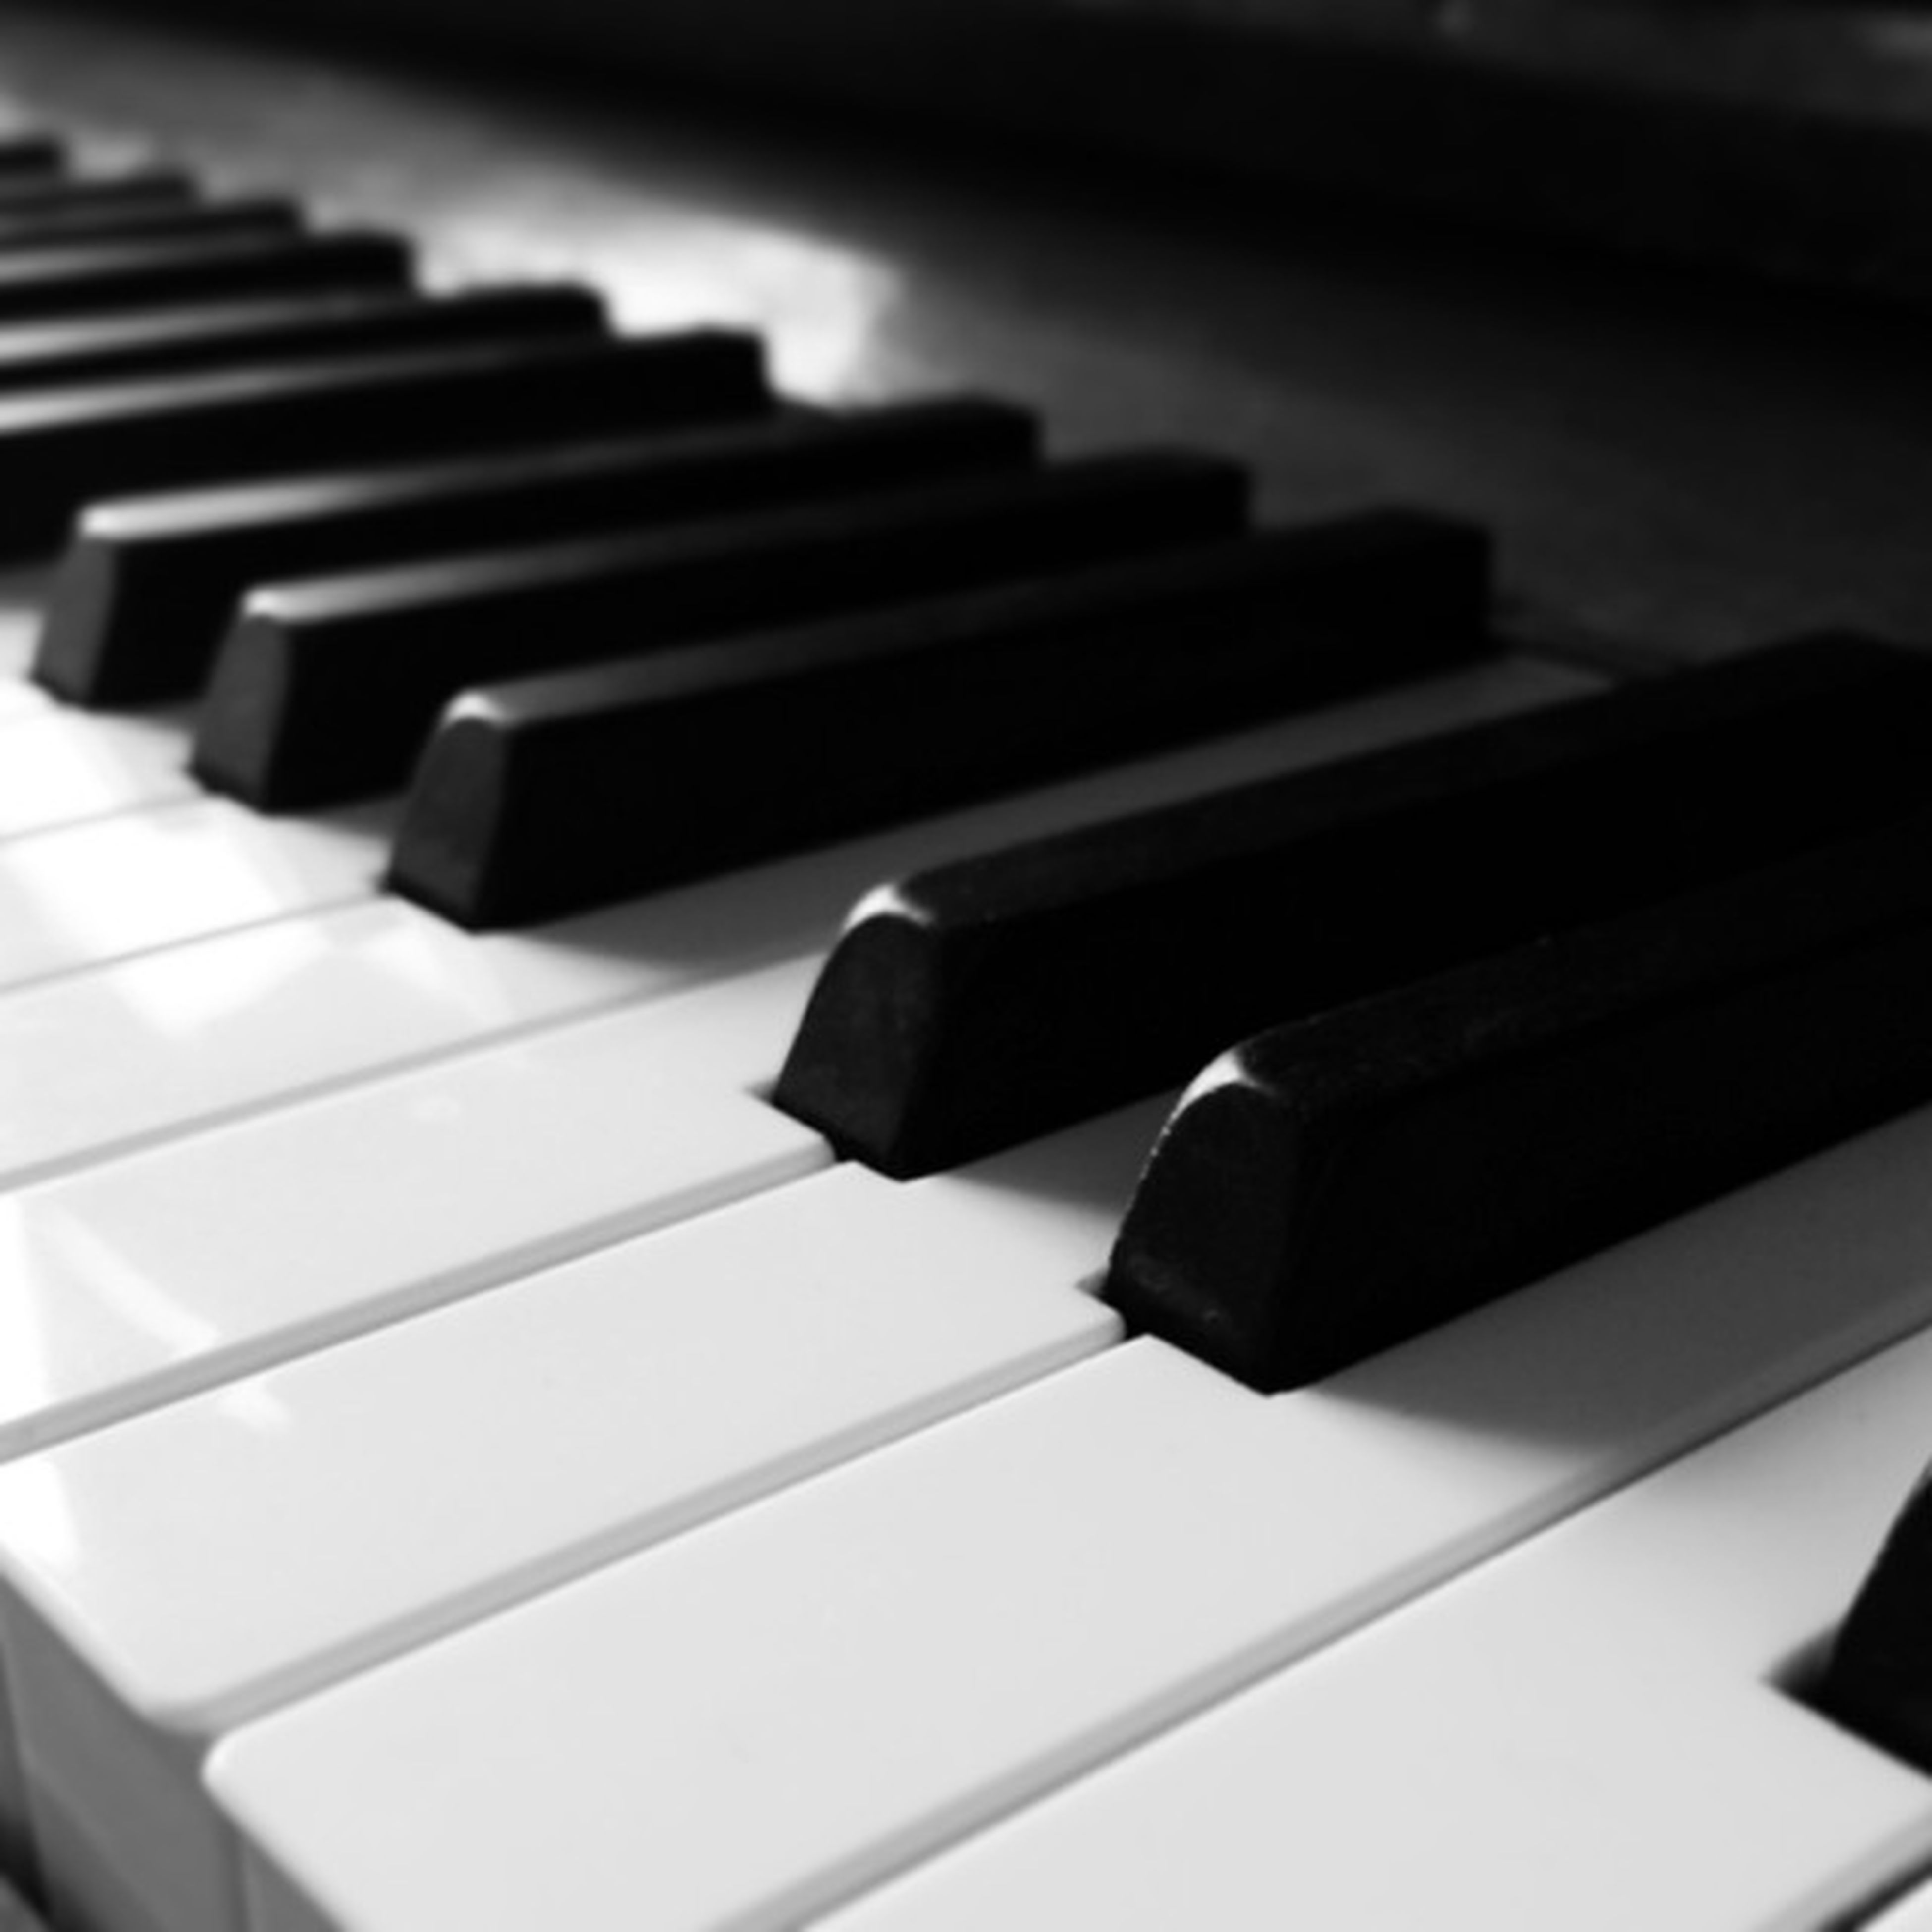 indoors, music, arts culture and entertainment, piano key, musical instrument, close-up, piano, still life, musical equipment, in a row, selective focus, pencil, table, technology, book, education, high angle view, pen, large group of objects, no people